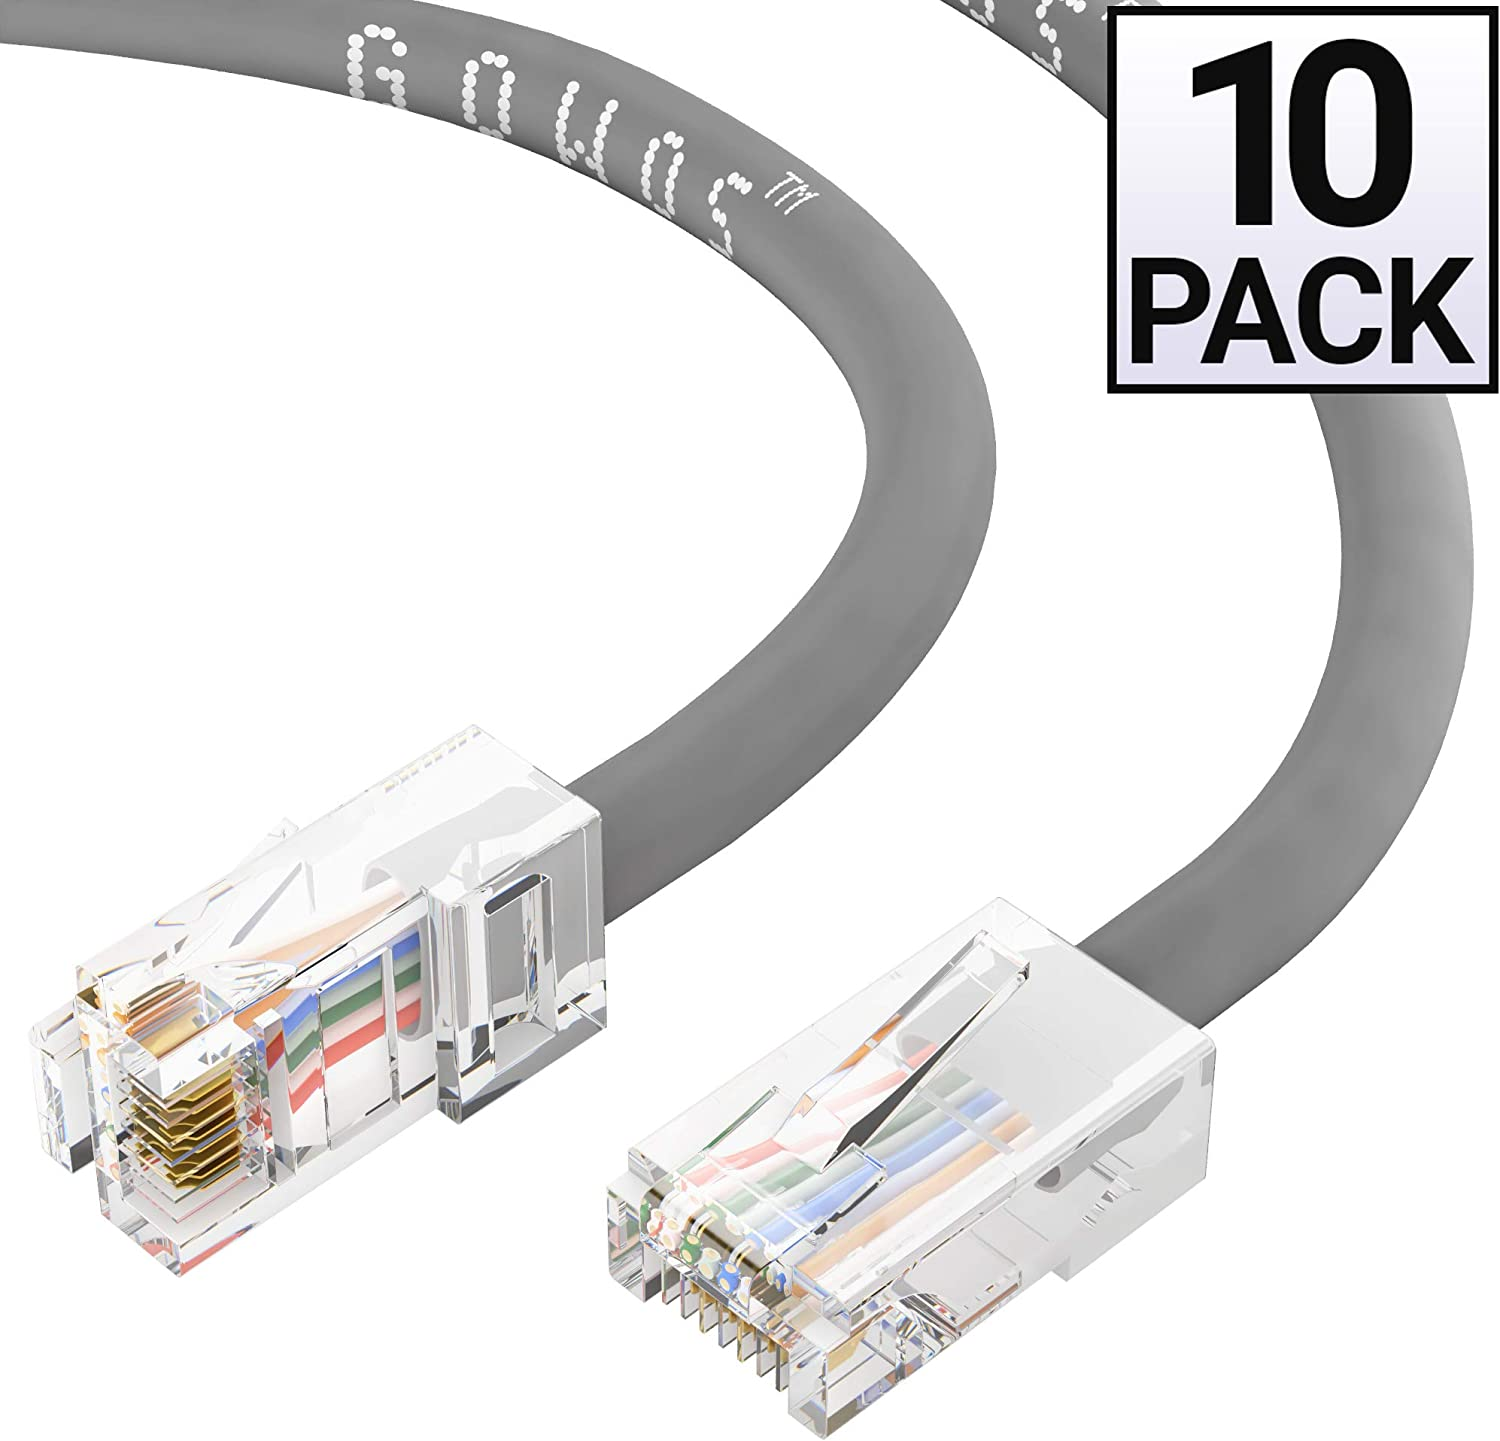 24AWG Network Cable with Gold Plated RJ45 Non-Booted Connector Gray 1Gigabit//Sec High Speed LAN Internet//Patch Cable 10-Pack - 3 Feet 350MHz GOWOS Cat5e Ethernet Cable